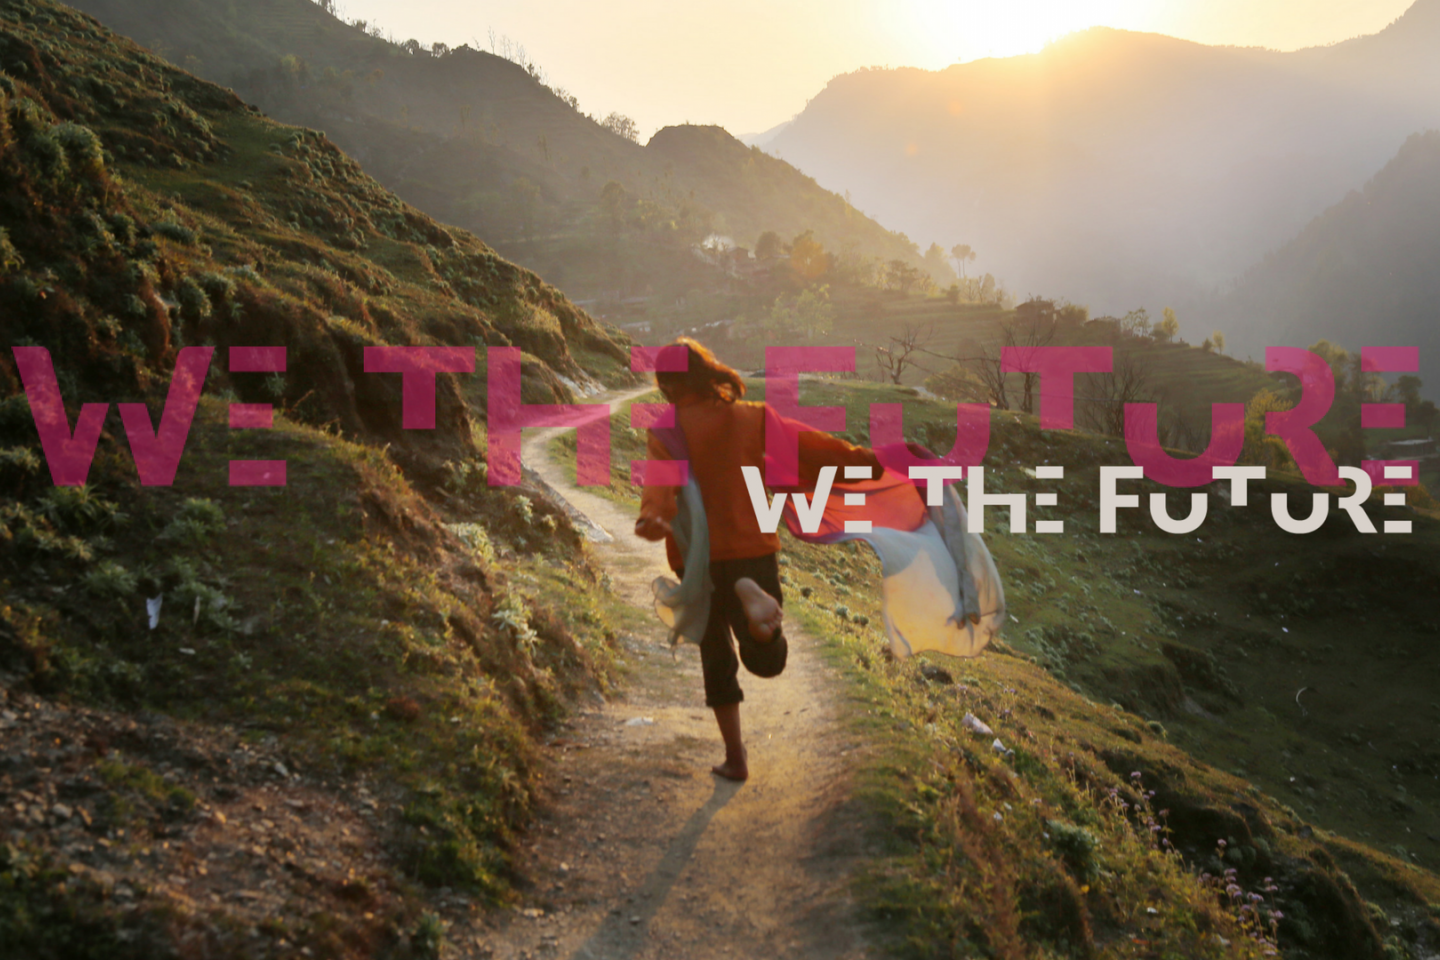 We the future image and logo